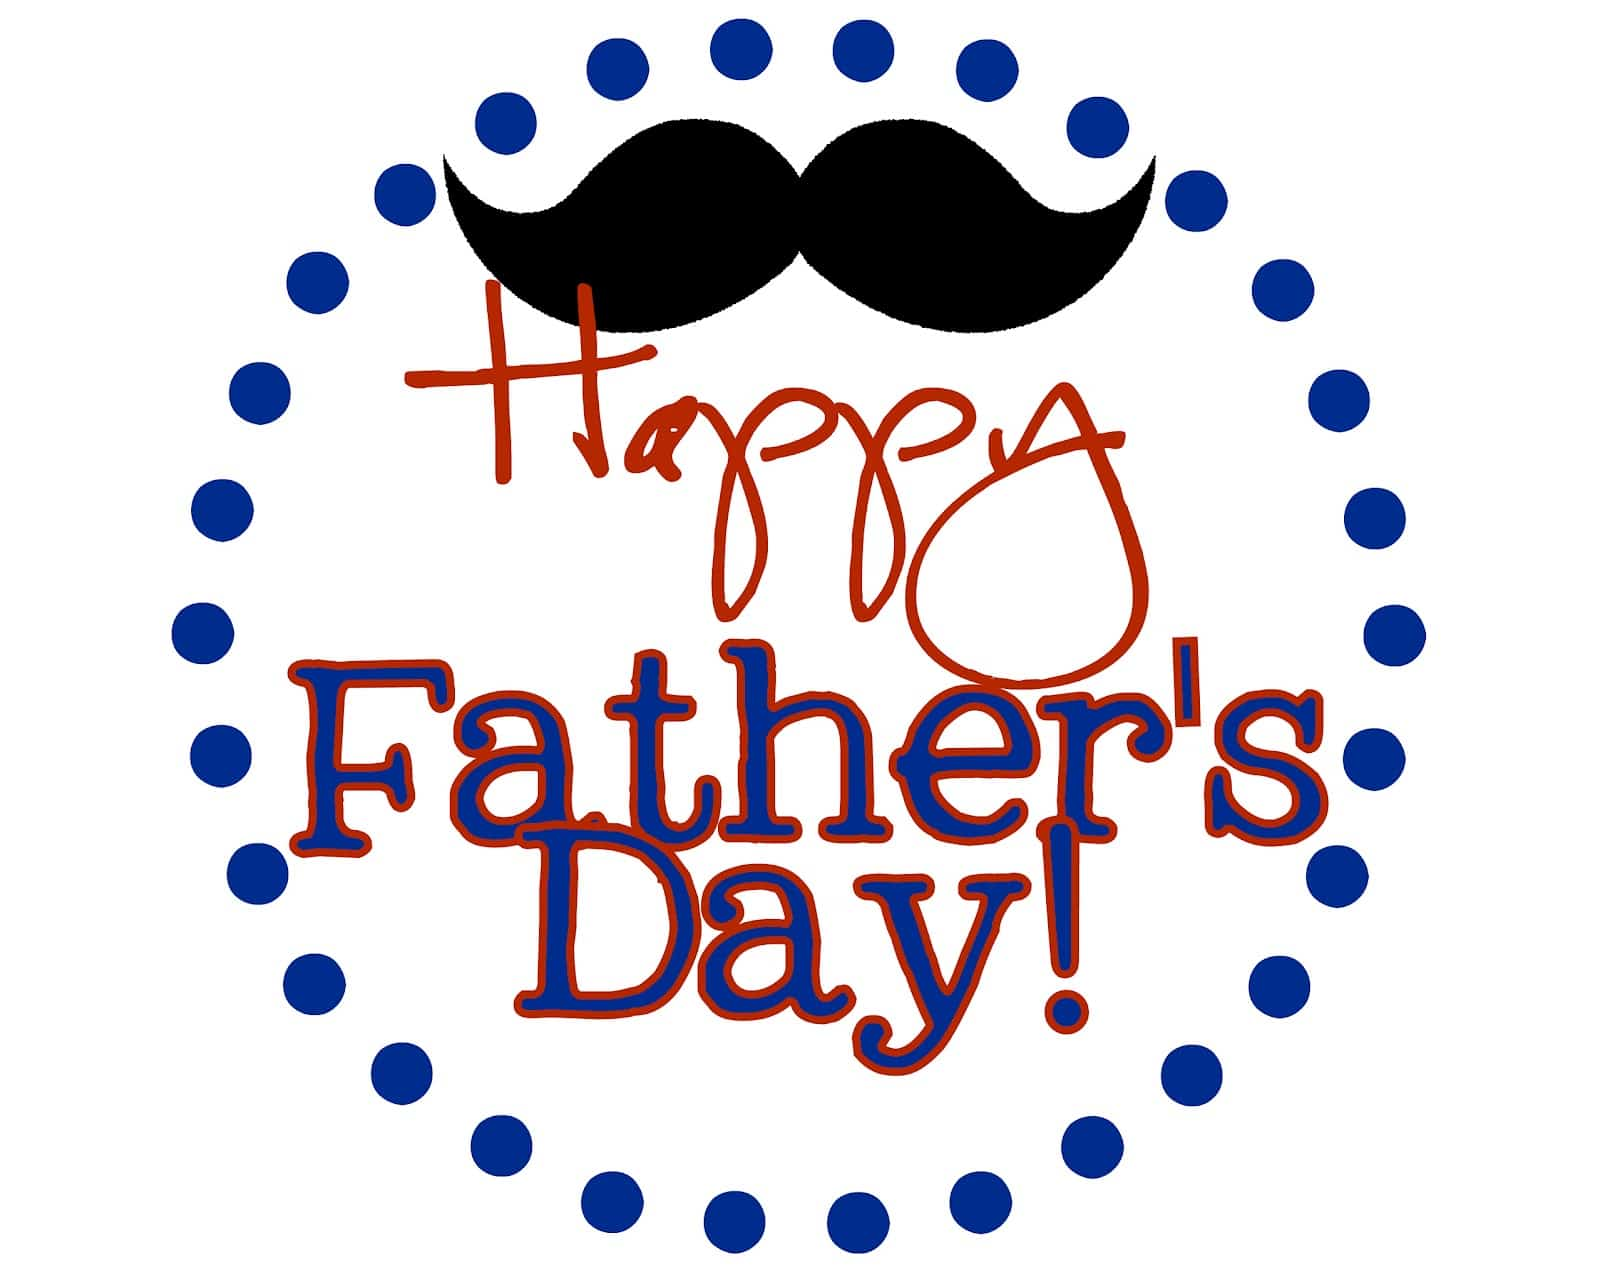 father's day 2019 - photo #10